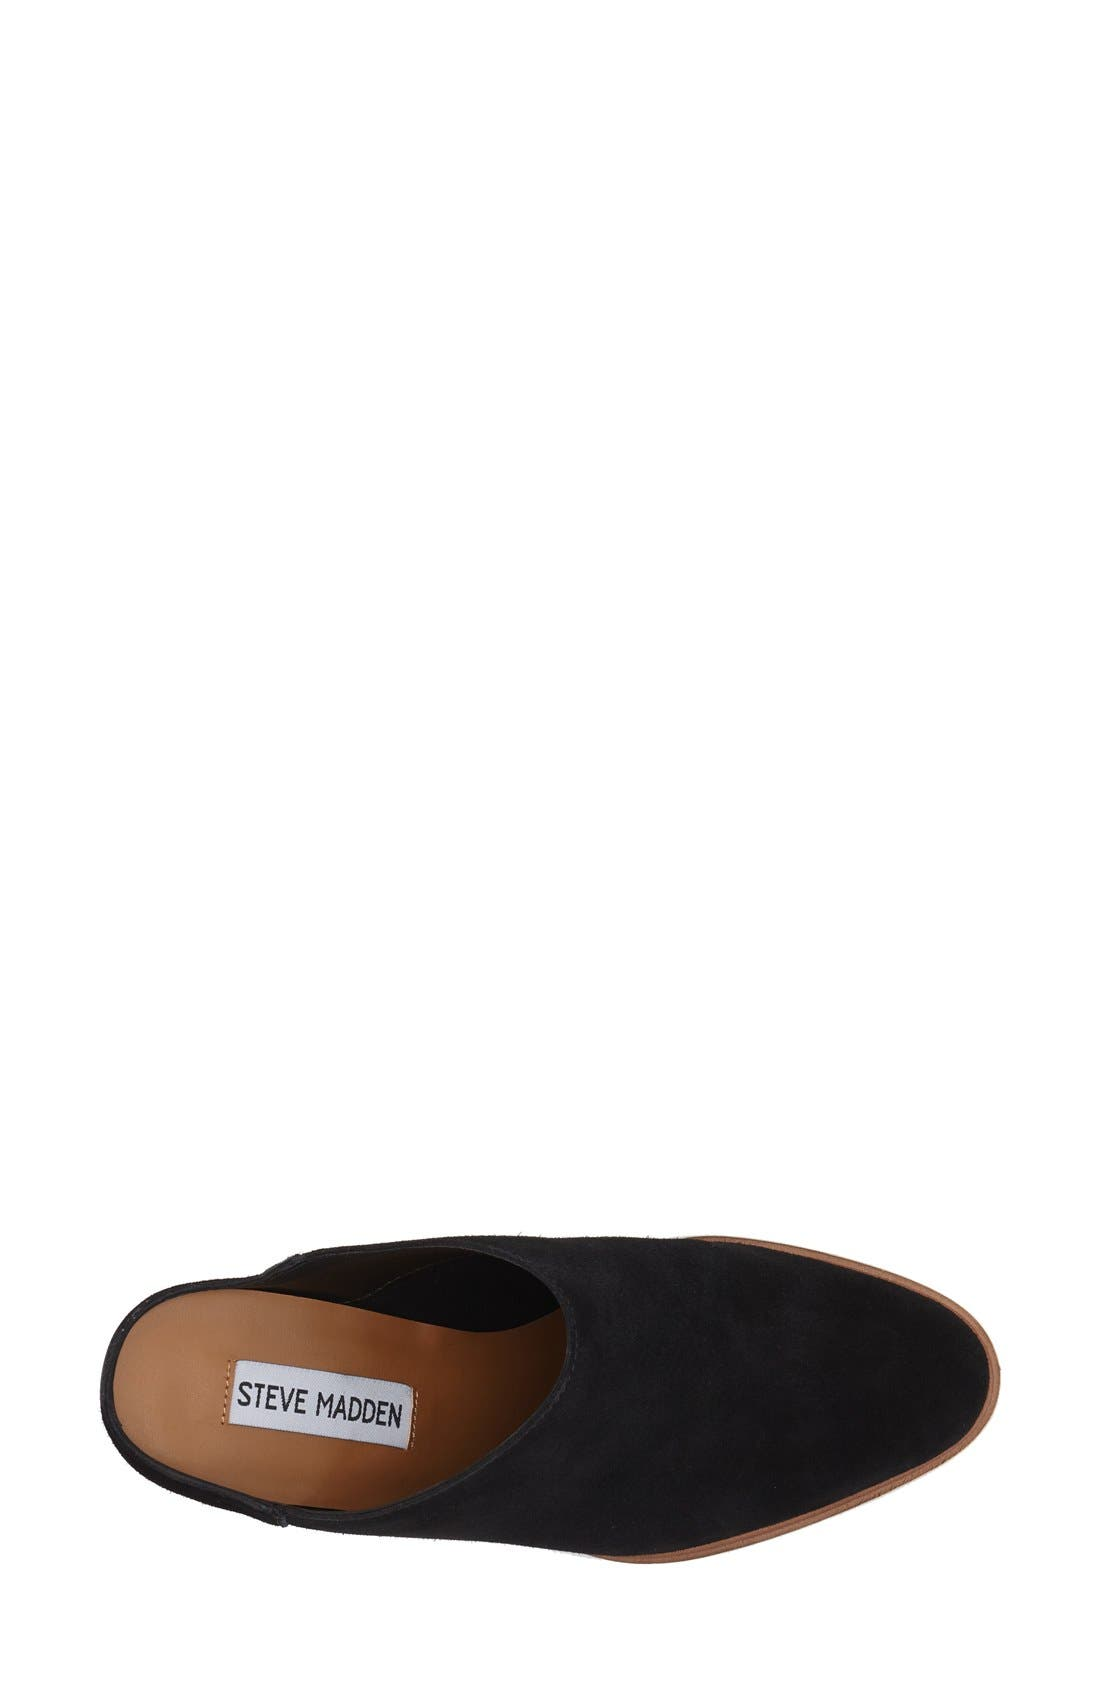 Alternate Image 3  - Steve Madden 'Miilo' Clog (Women)